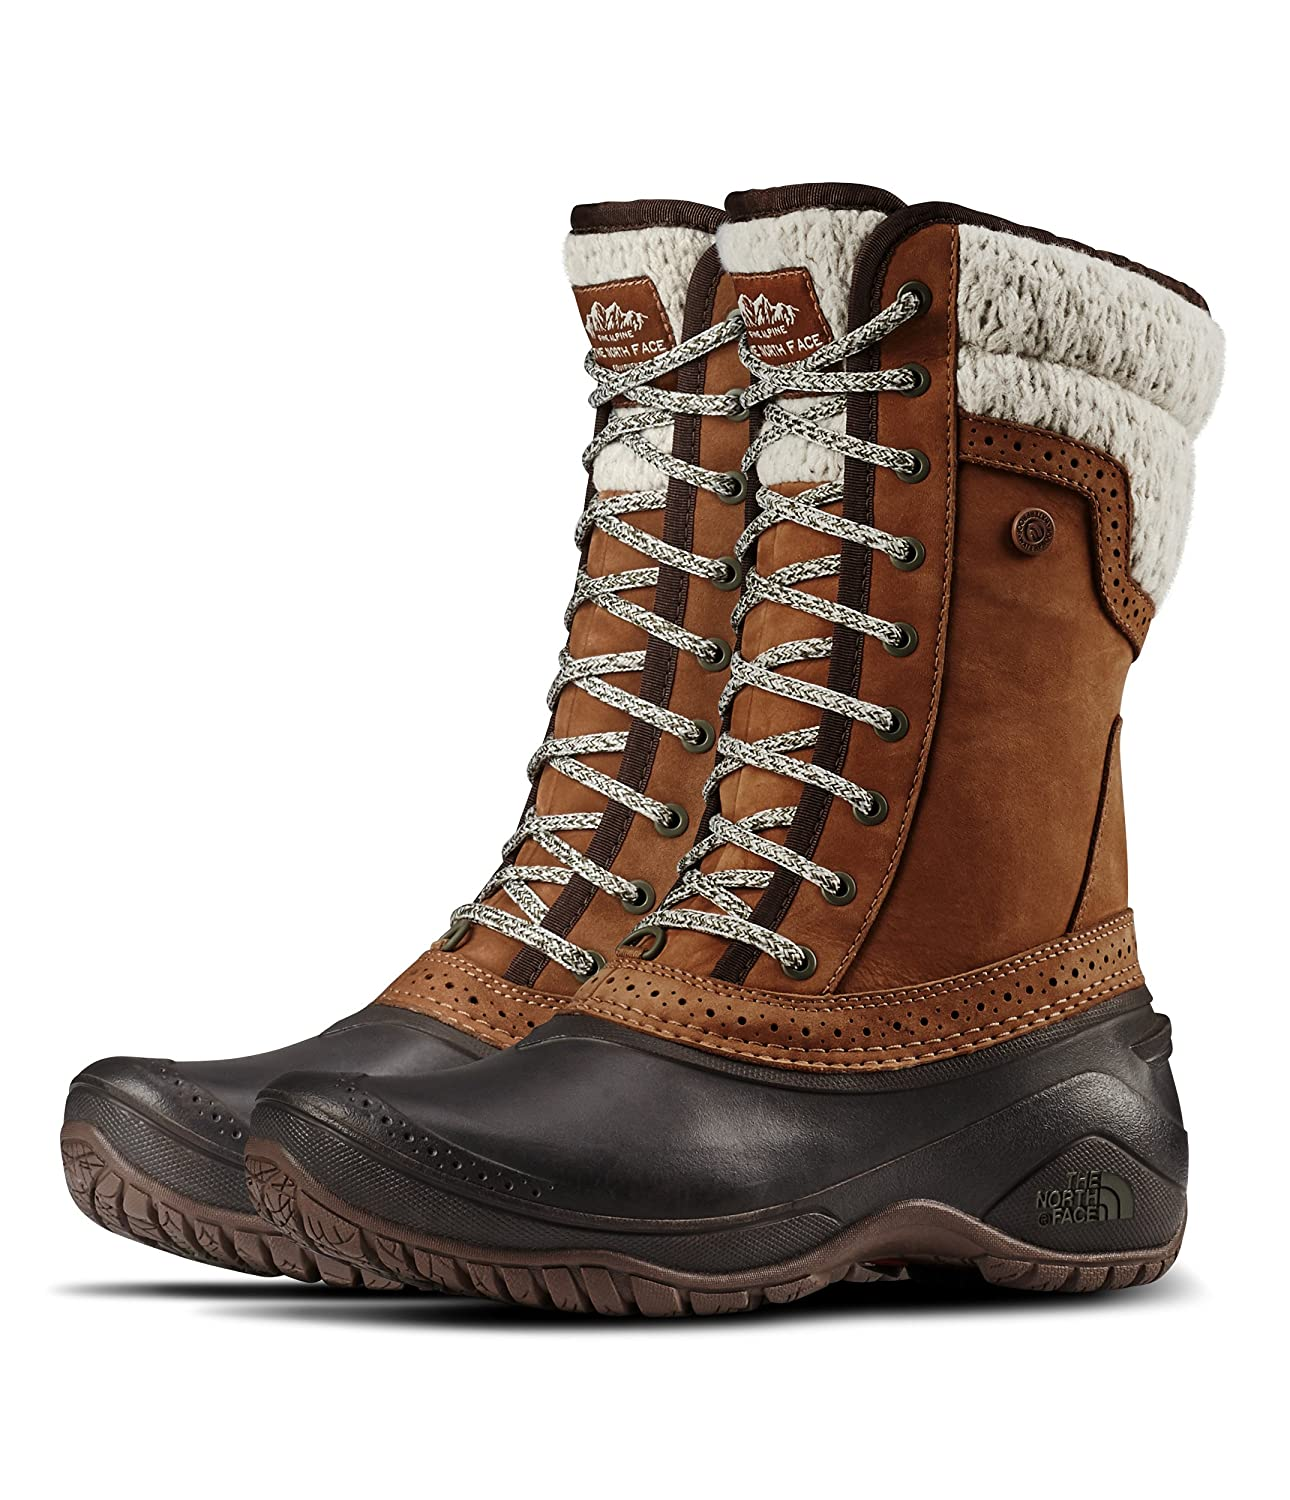 08b0899eb The North Face Women's Shellista II Mid Dachshund Brown/Demitasse Brown 5 B  US